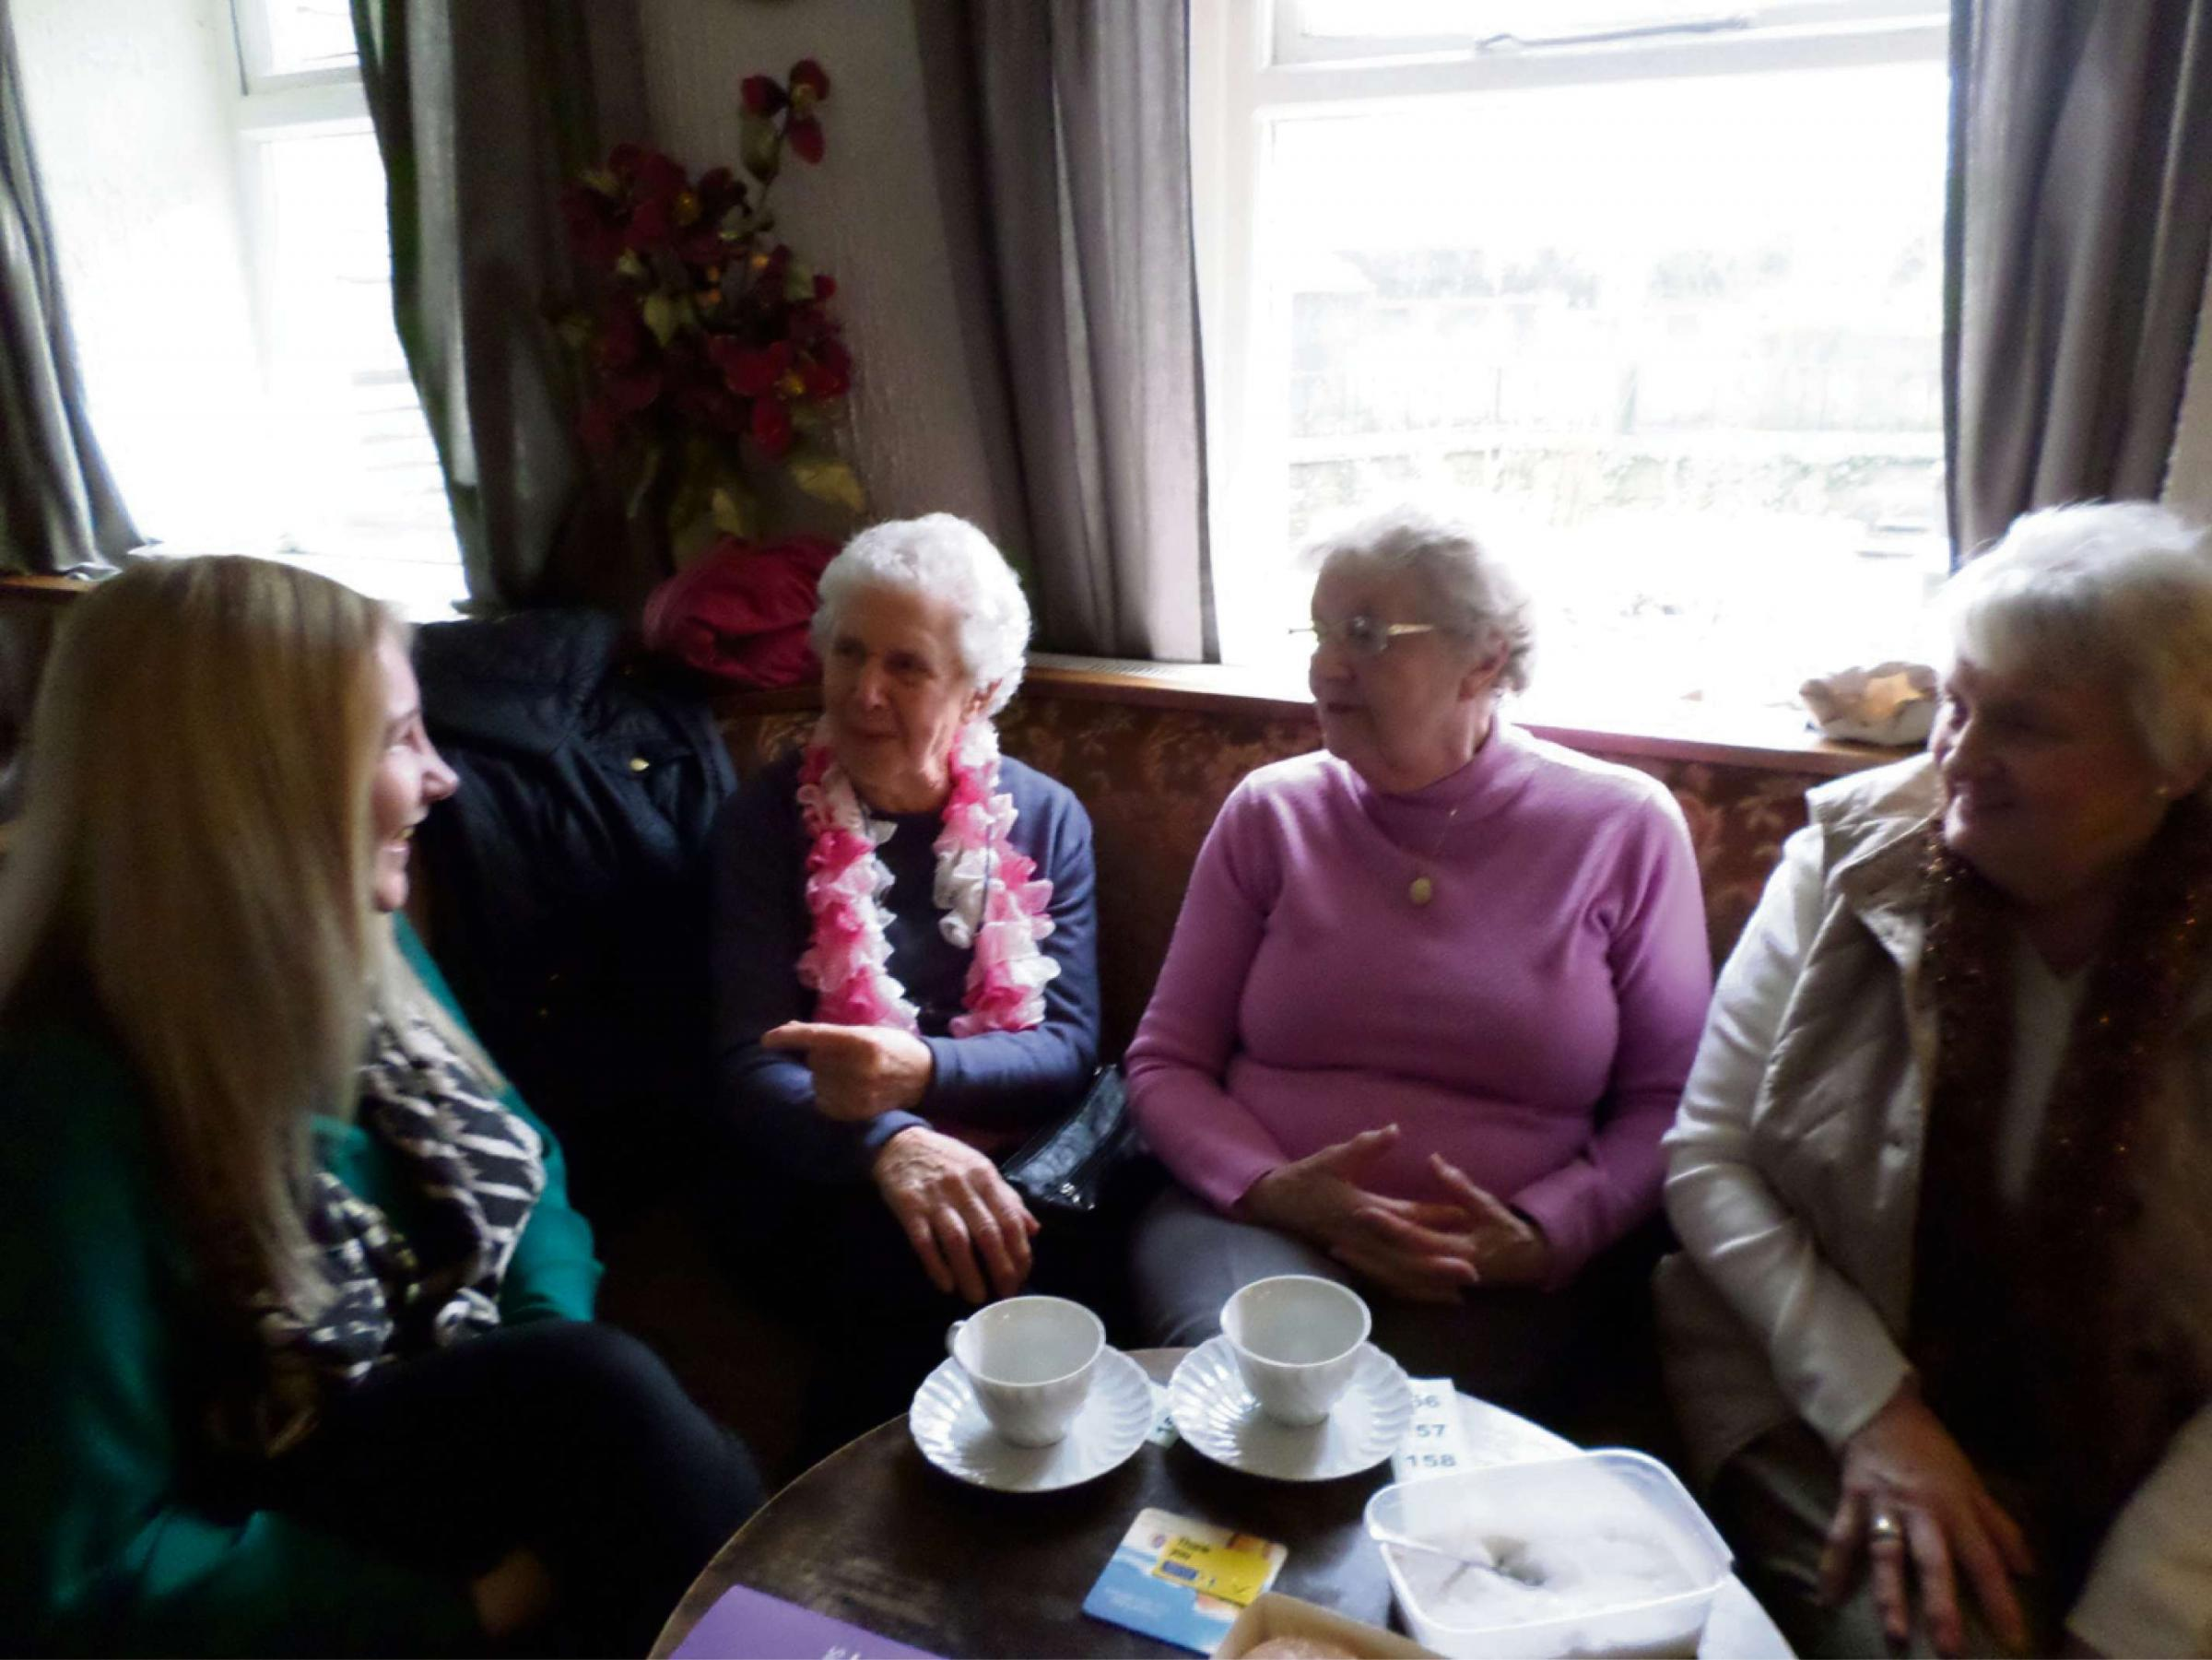 Abercarn group praised for pensioner power